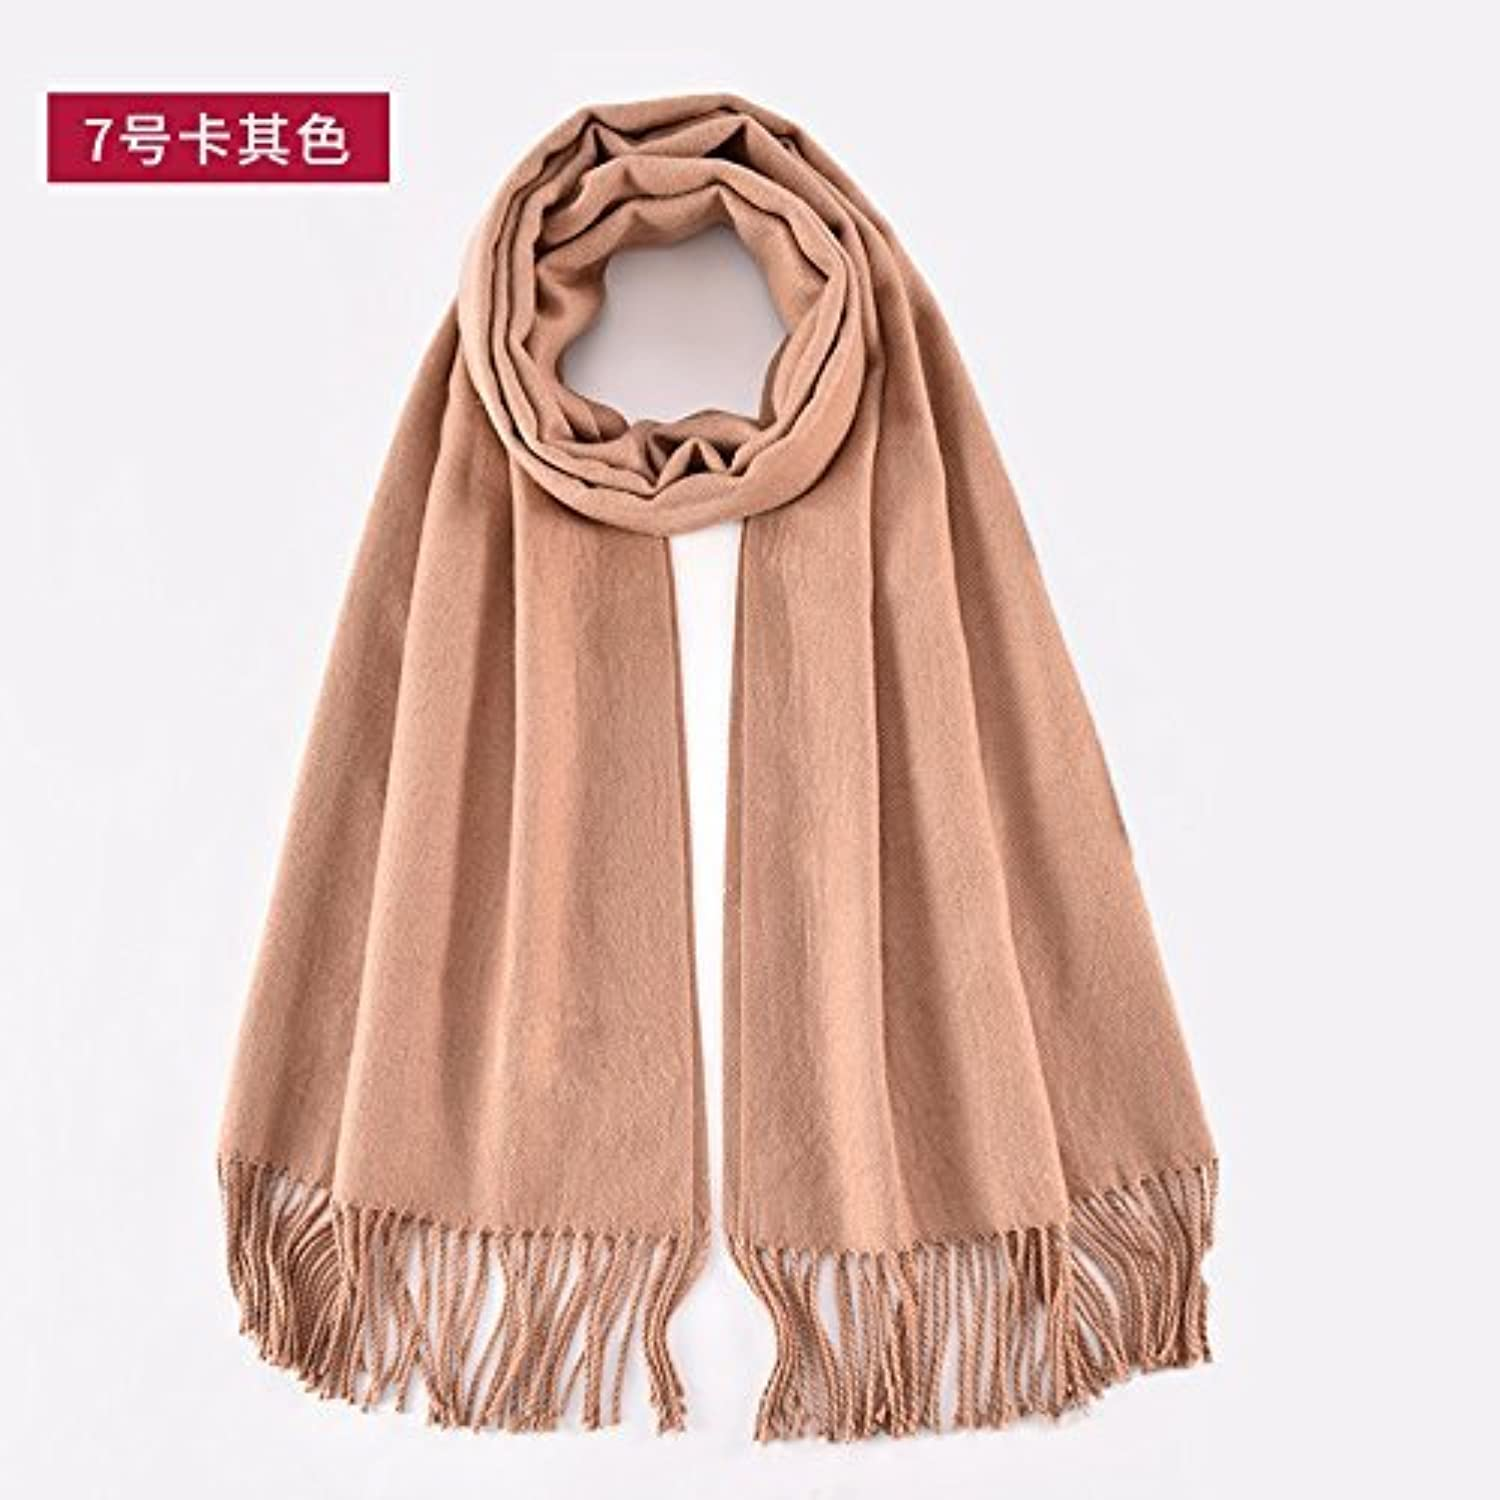 SED ScarfPure Warm Winter Winter Scarf AllMatch Female Students Knitted Shawl Imitation Cashmere Scarf Female Autumn and Winter Korean Students Knitted Shawl Long